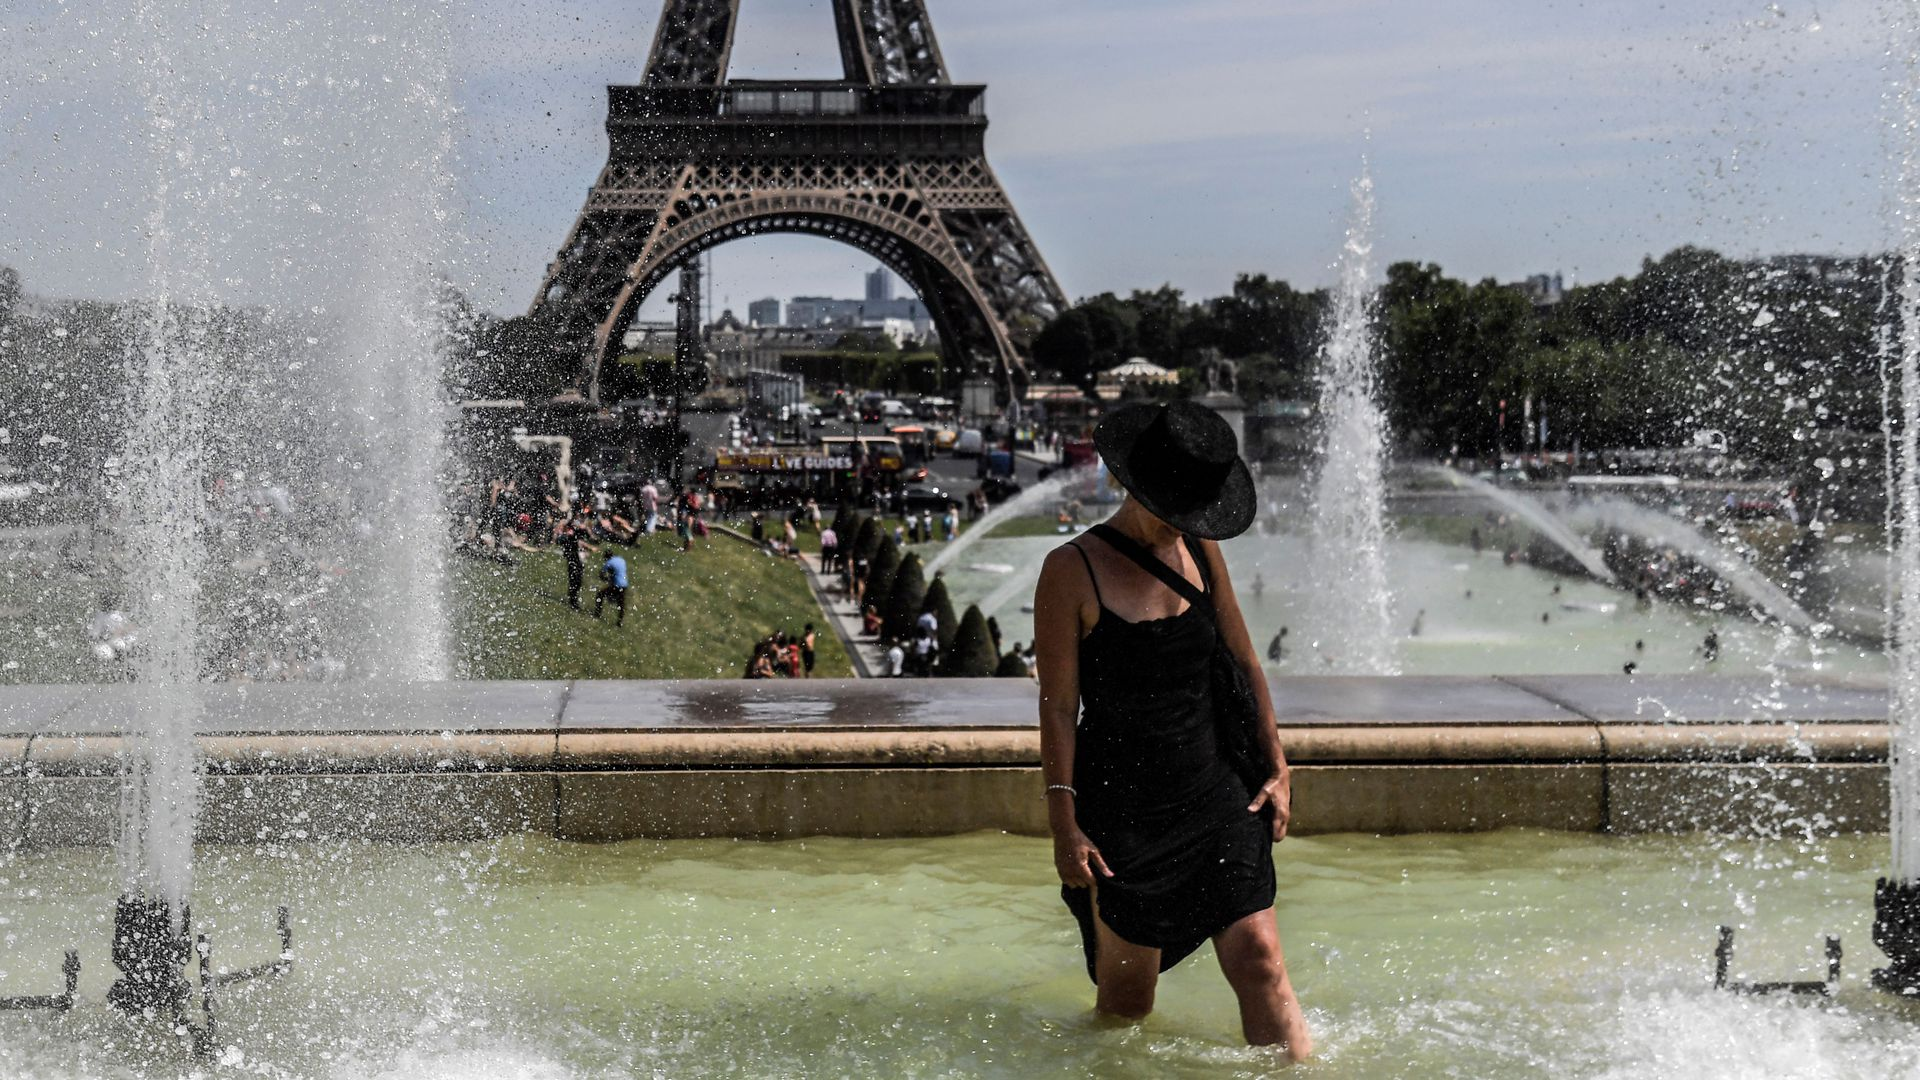 A woman cools off at the Trocadero Fountains near the Eiffel Tower in Paris, on July 22.